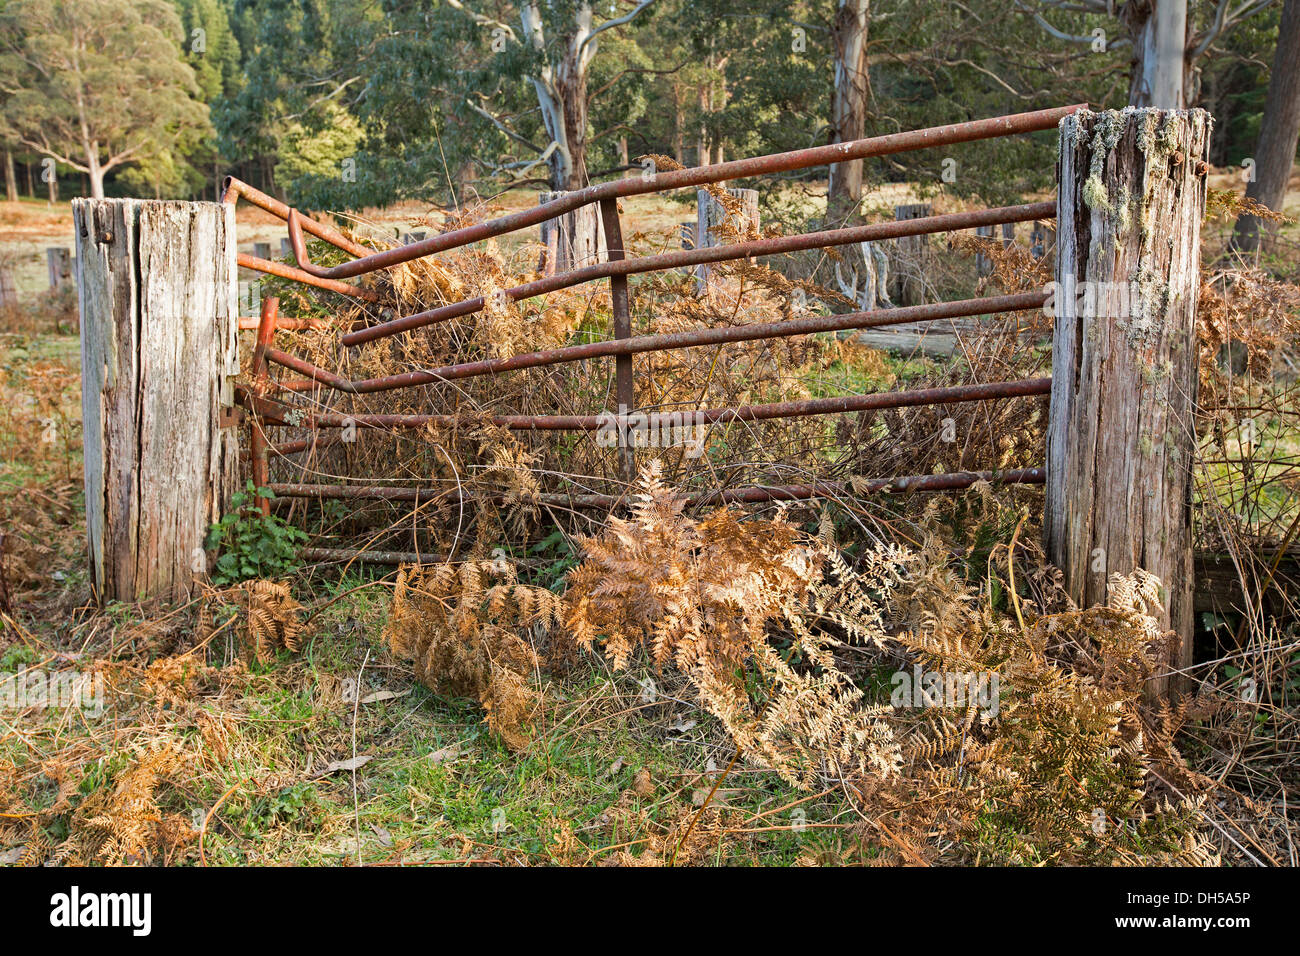 Farm Gate Australia Stock Photos Amp Farm Gate Australia